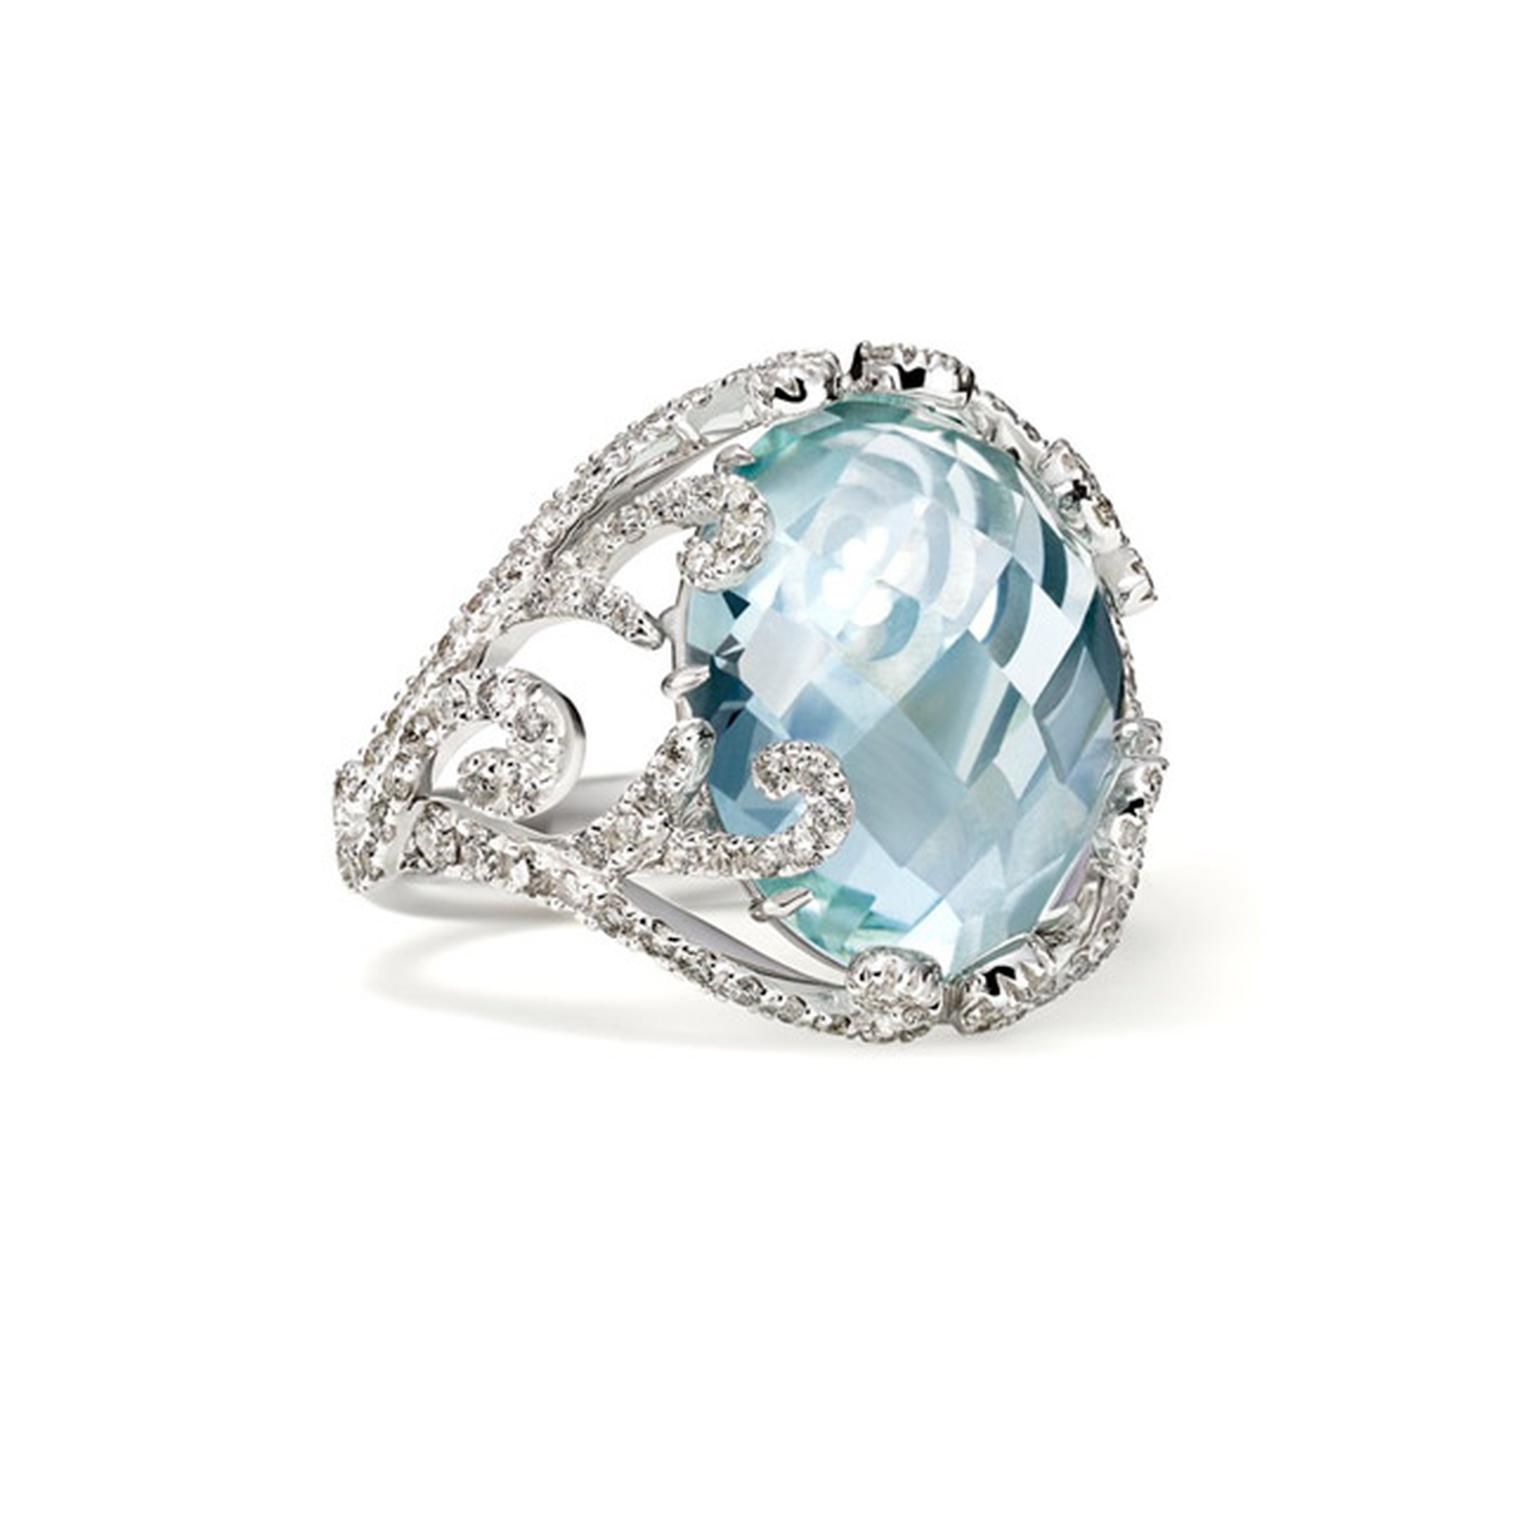 Sarah-Ho-for-William-&-Son-aqua-ring-main